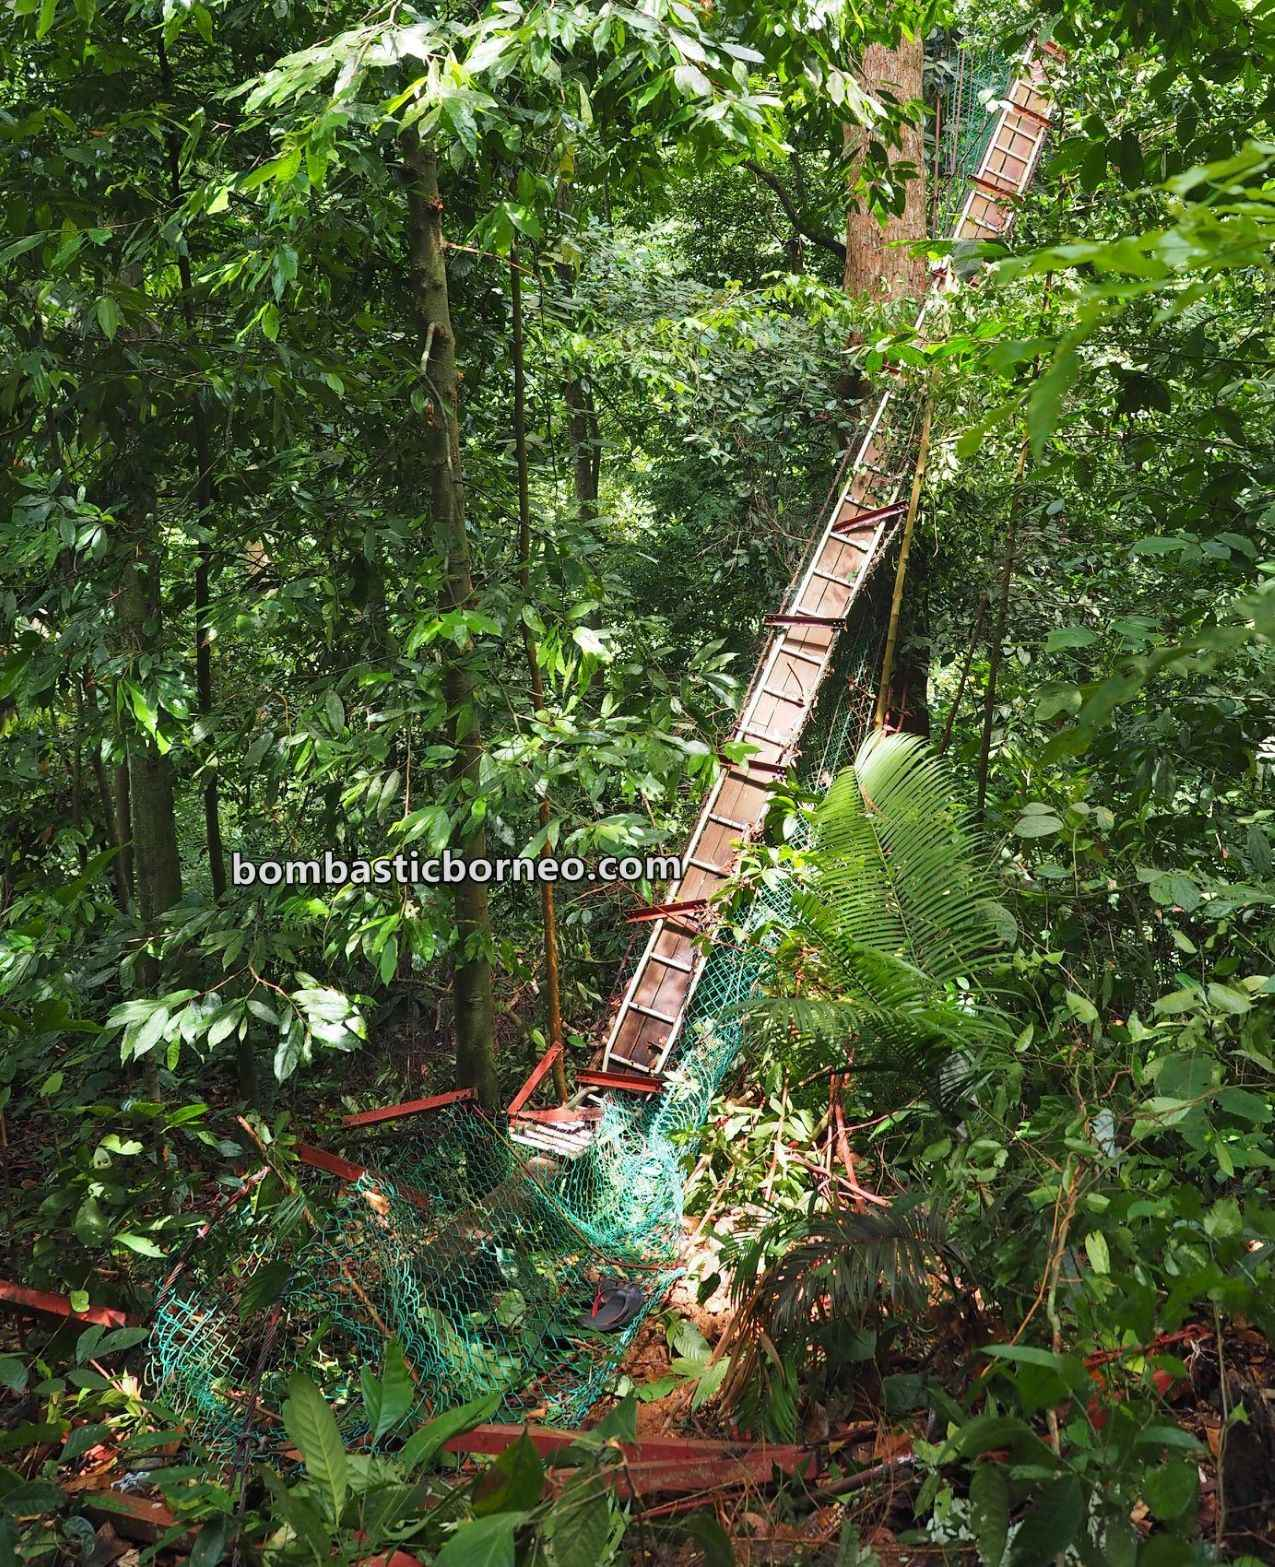 Pusat Sejadi Bukit Gemok, rainforest, adventure, nature, outdoor, jungle trekking, conservation, Jambatan gantung, Titian Silara, Malaysia, travel guide, Trans Borneo, 穿越婆罗洲游踪, 沙巴斗湖旅游景点, 森林保护区吊桥,